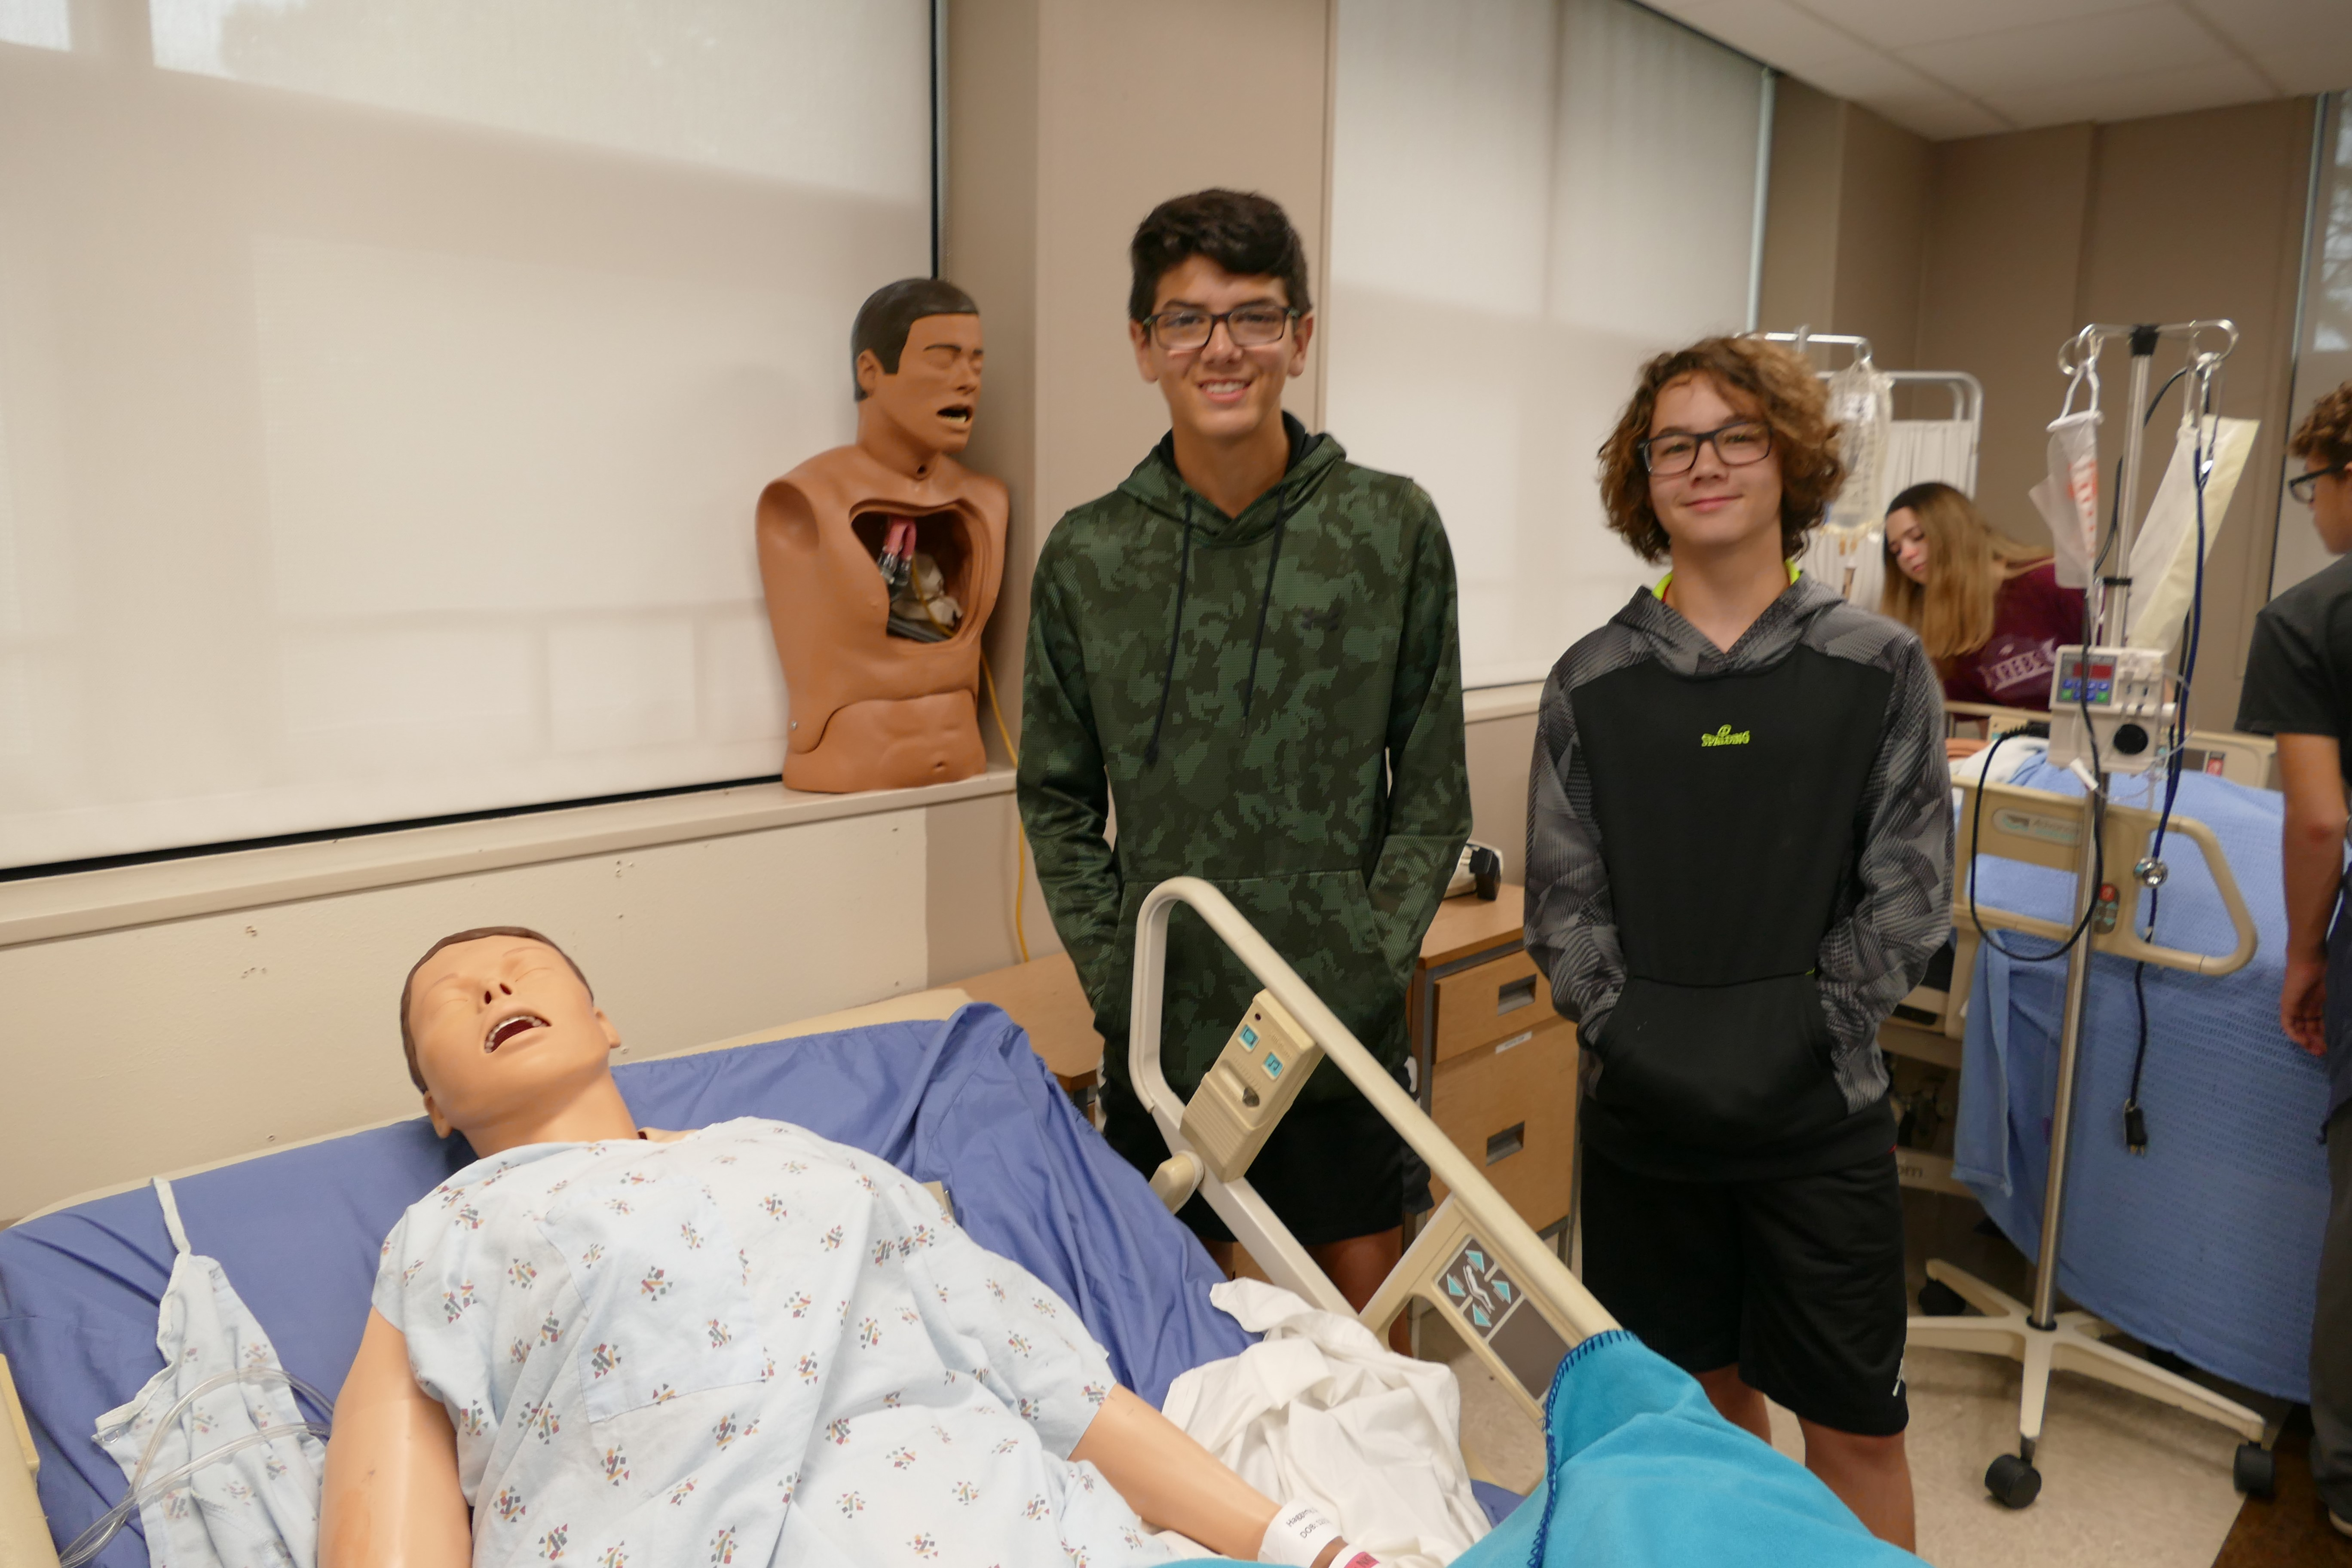 Krebs eighth grade students tour Eastern Oklahoma State